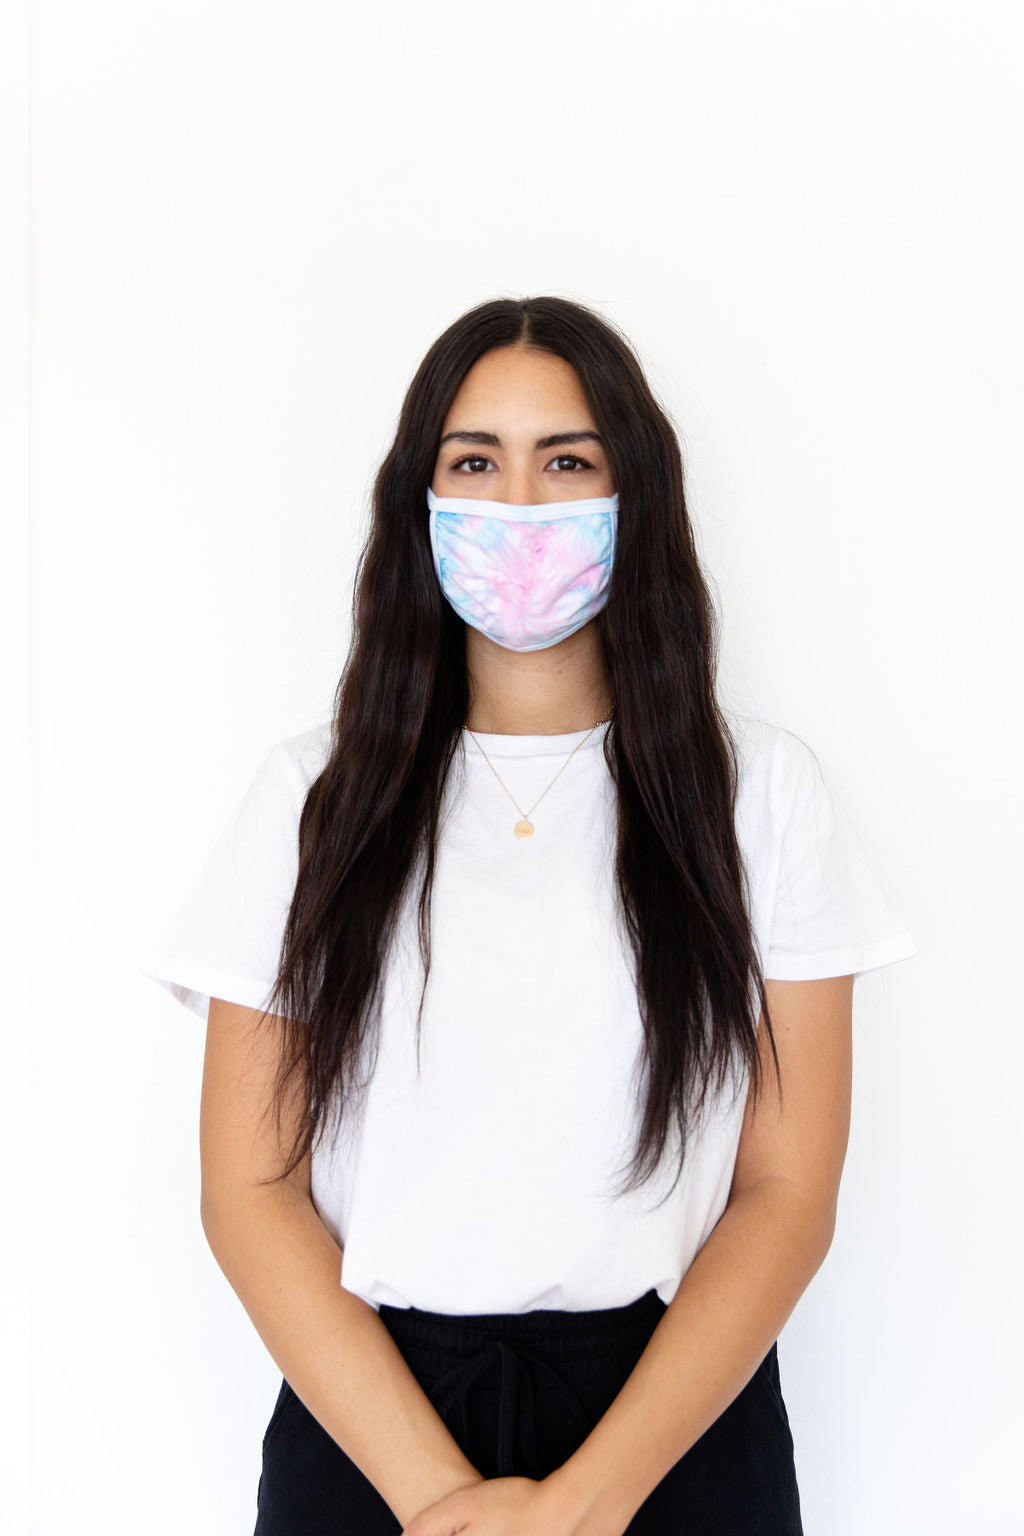 COTTON CANDY TIE DYE - ADULT FACE MASK